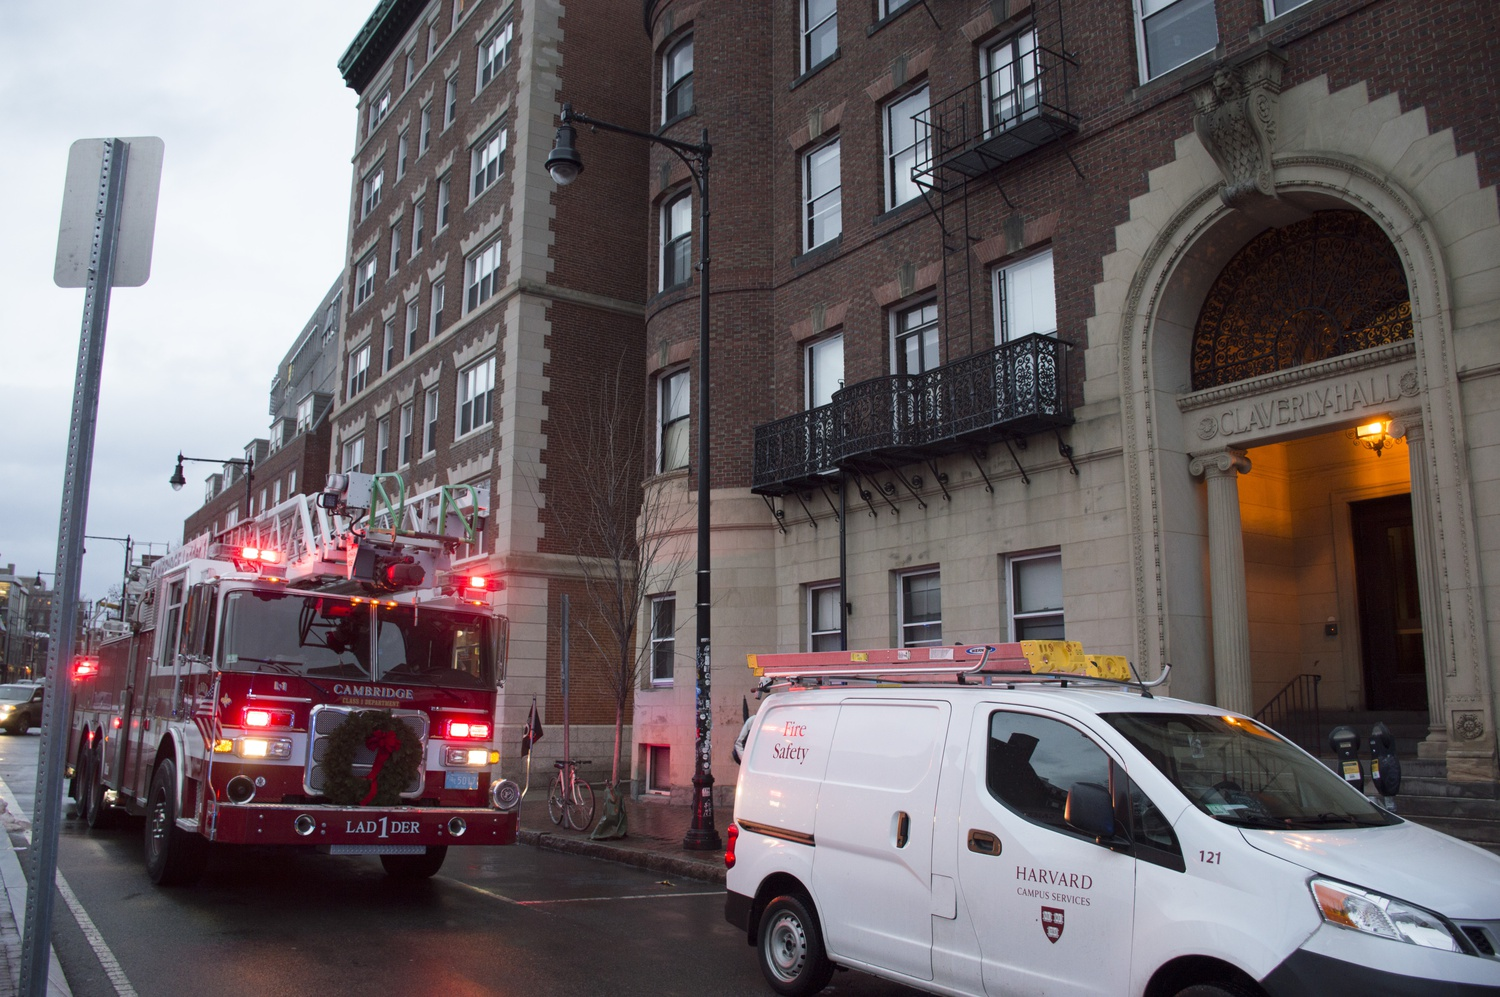 Cambridge Fire Dept. responded to reports of smoke, attributed to an overheated phone charger cable, in Adams House's Claverly Hall on Tuesday evening.